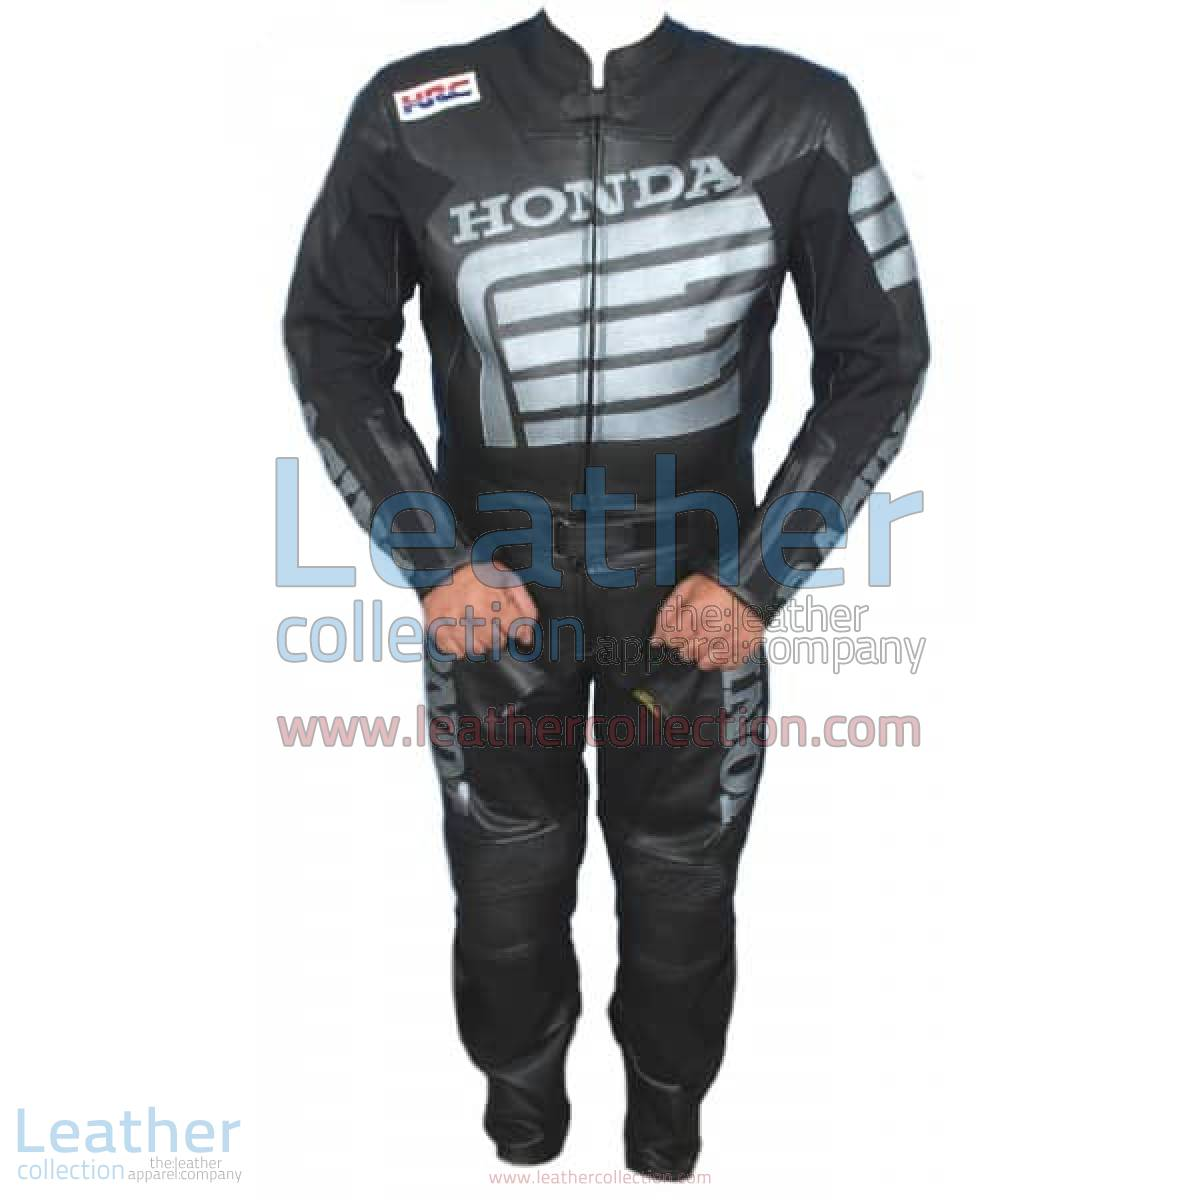 Honda Motorcycle Leather Suit | honda clothing,motorcycle leather suit